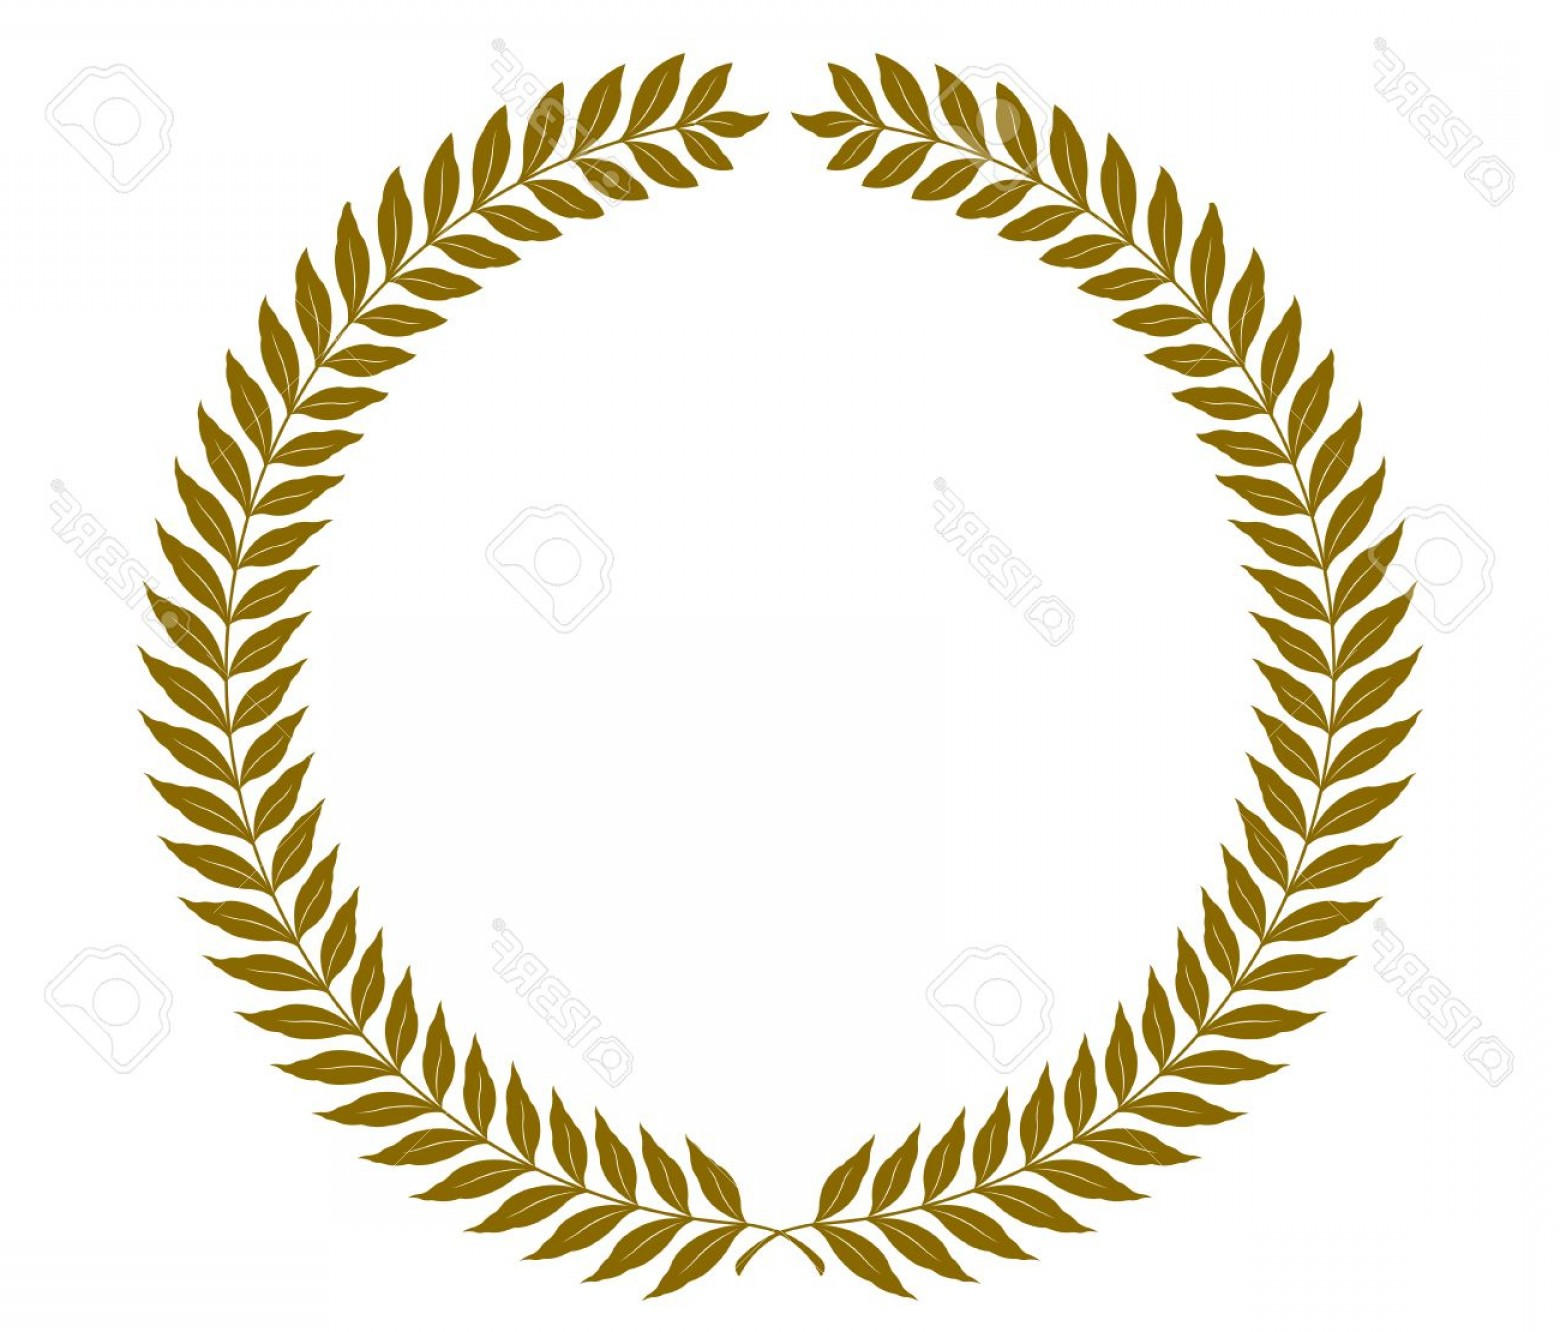 Half Leaf Wreath Vector: Photostock Vector Golden Round Laurel Wreaths Vector Format Fully Editable You Can Change Form And Color